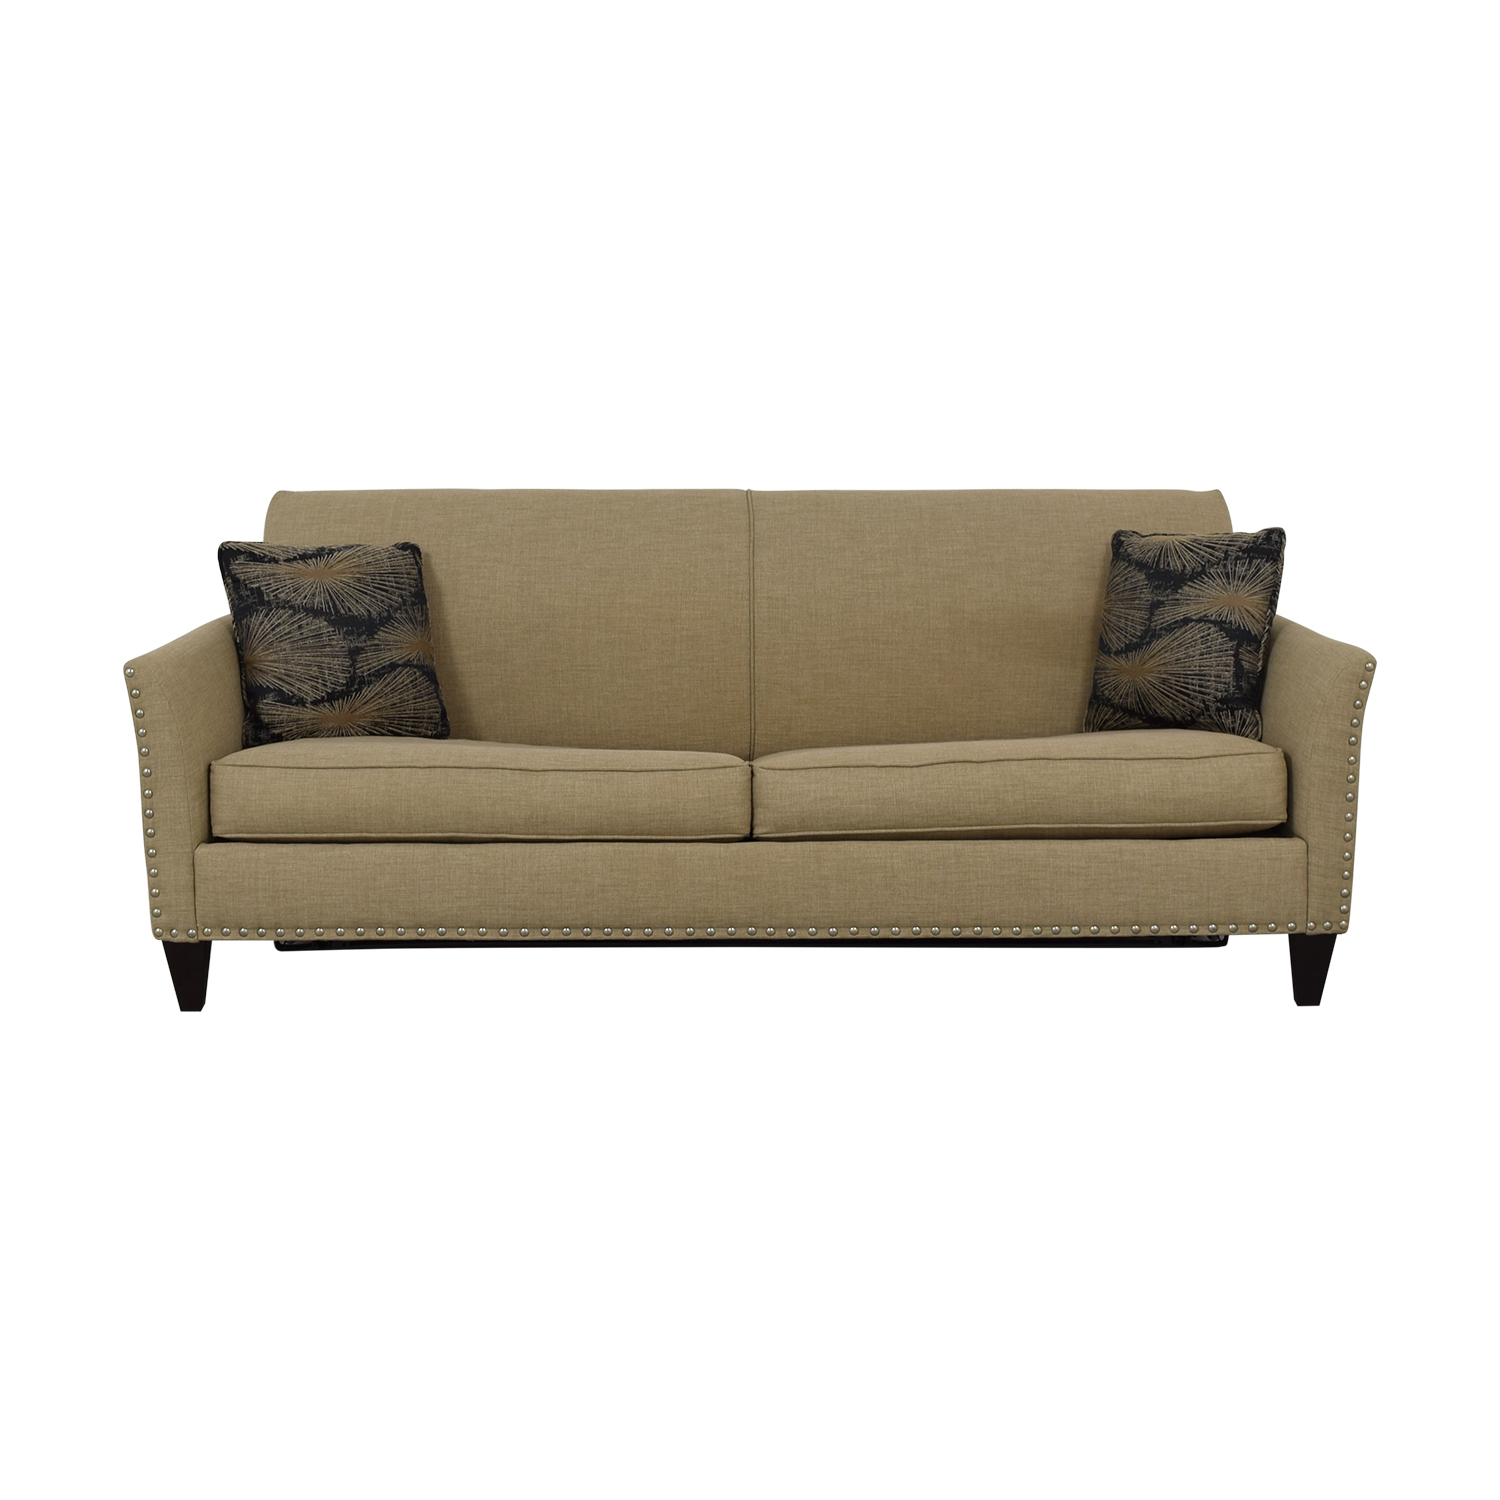 buy Rowe Furniture Varick Sleeper Sofa Rowe Furniture Sofas